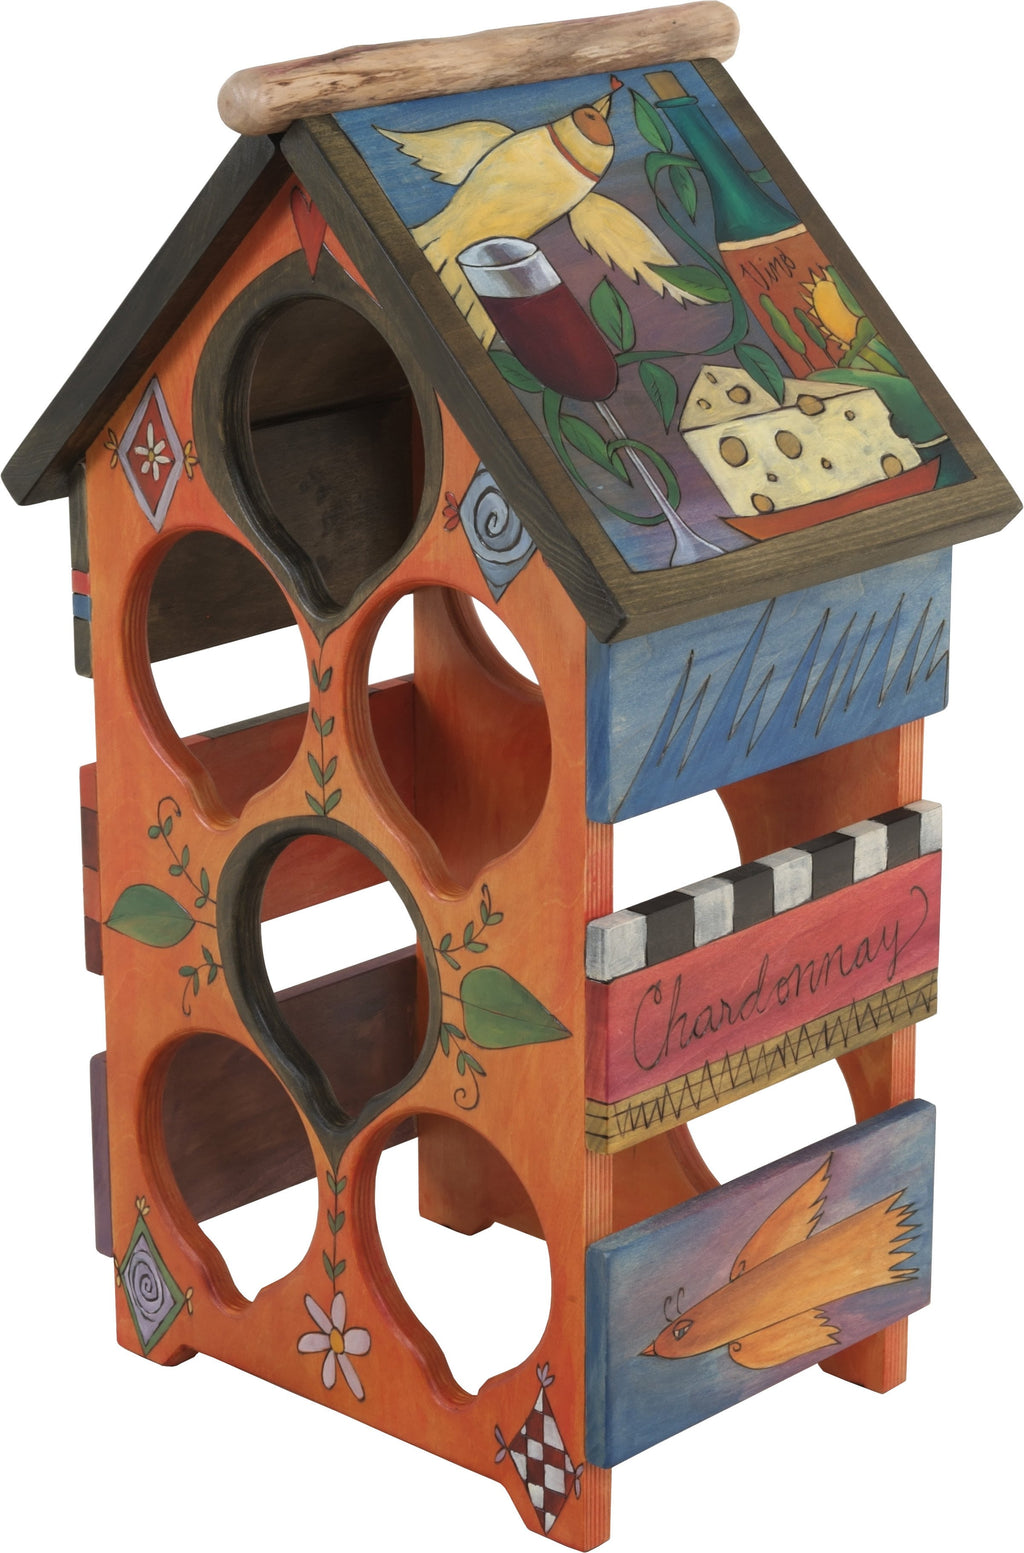 Sticks handmade wine rack with folk art imagery